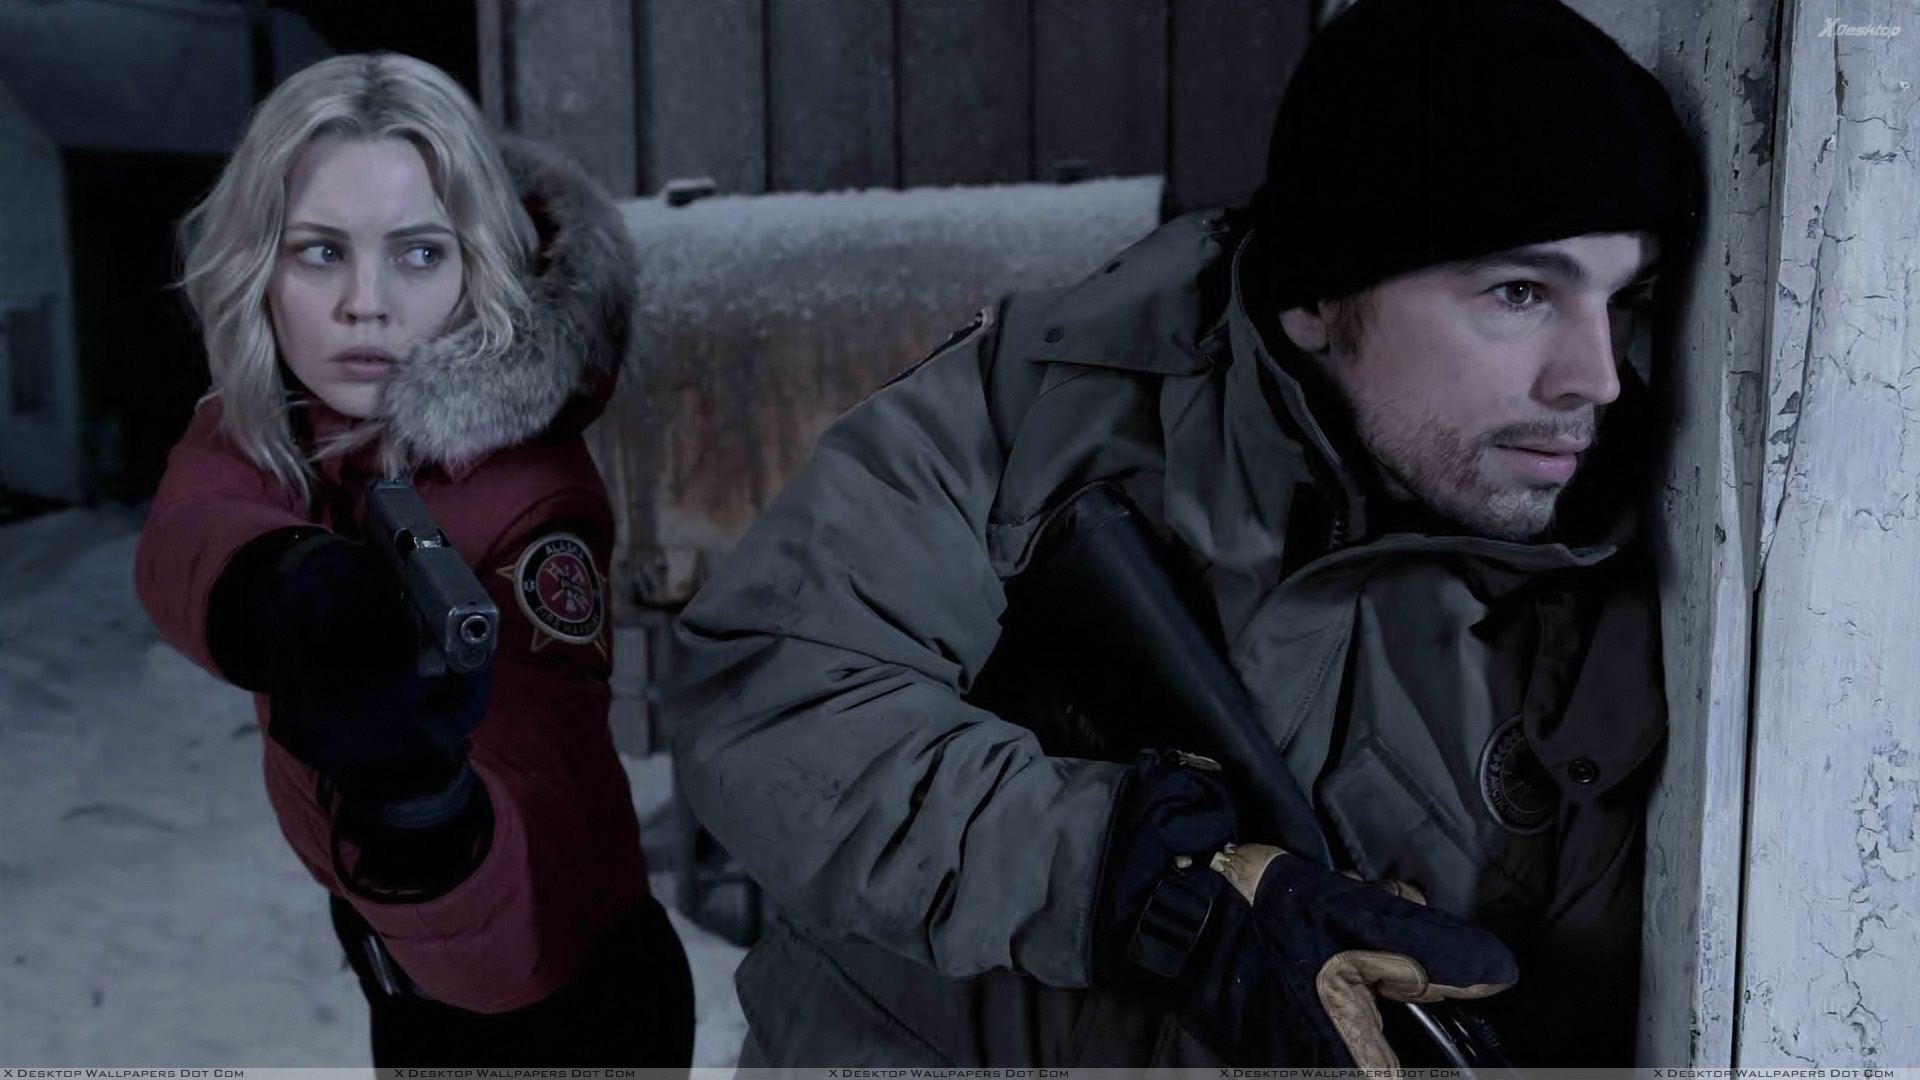 30 Days Of Night Josh Hartnett And Melissa George Wallpaper